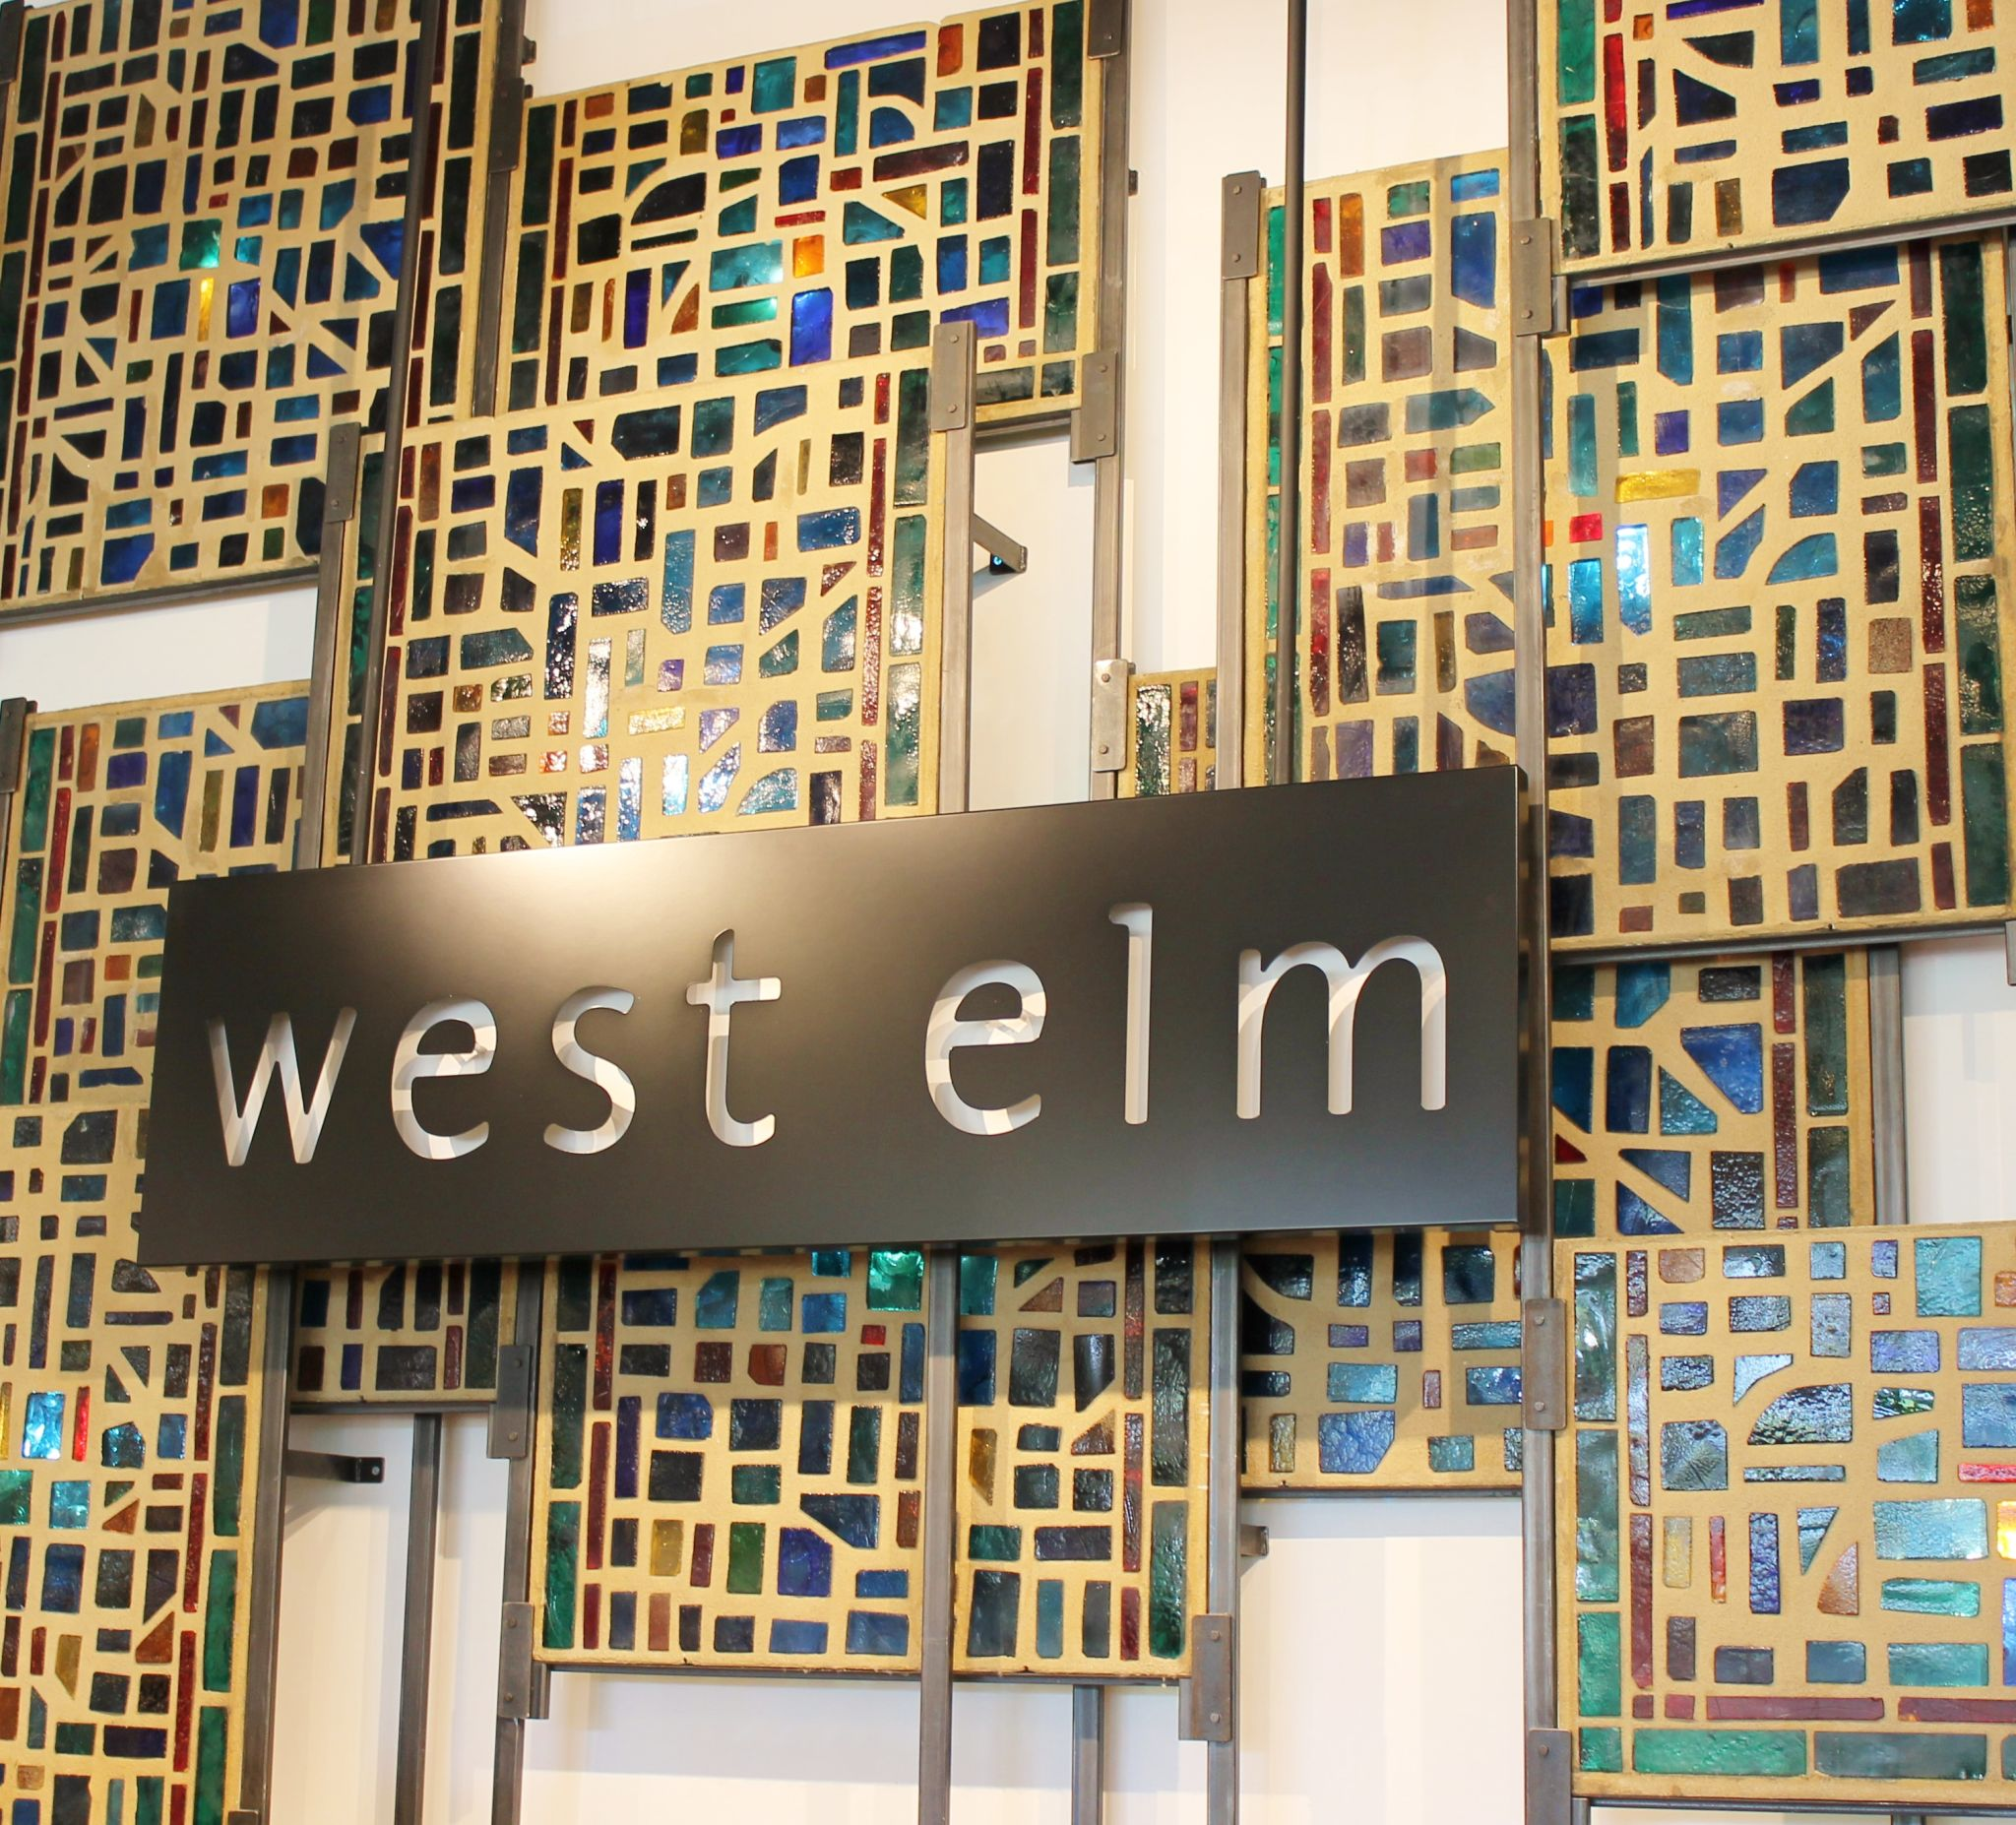 west elm sign